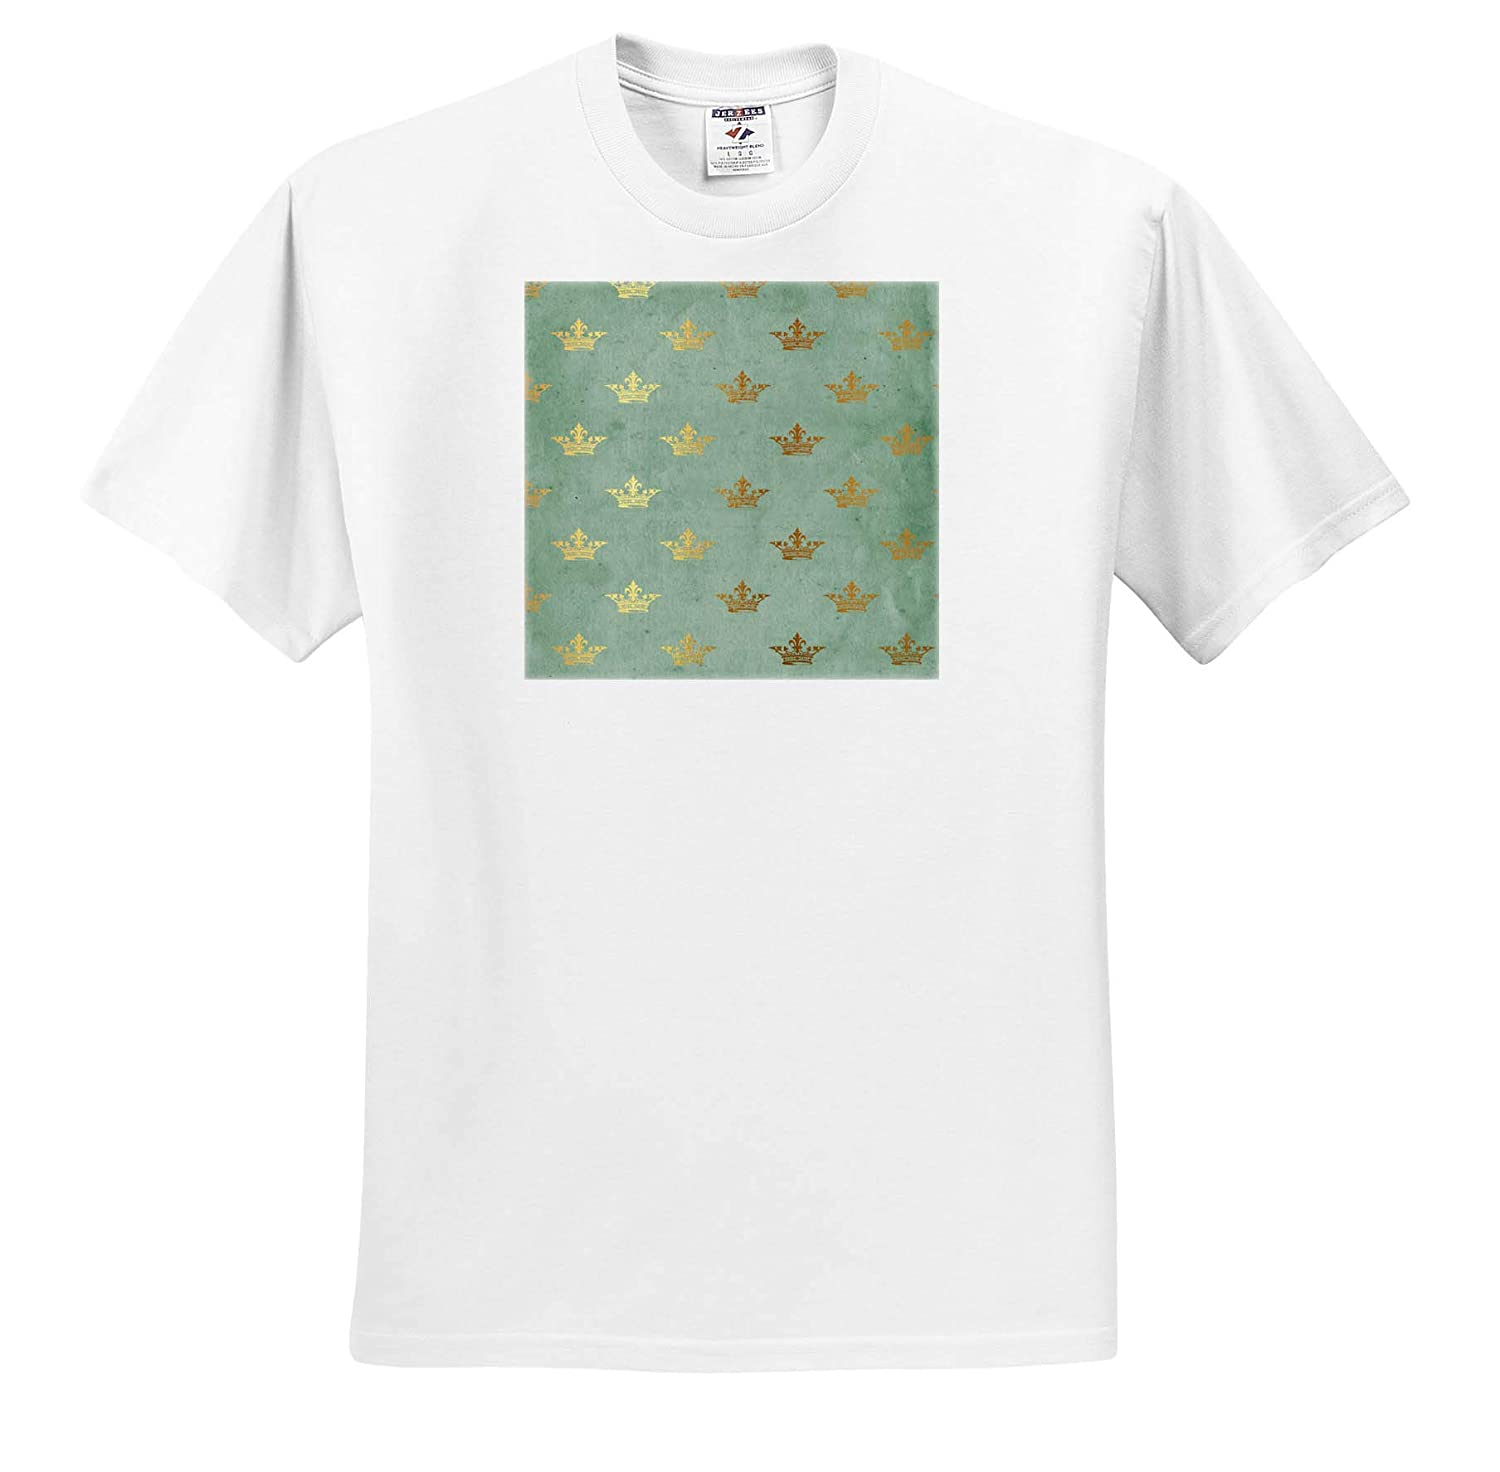 ts/_316252 Patterns 3dRose Anne Marie Baugh Light Aqua with Image of Gold Crowns Pattern Adult T-Shirt XL